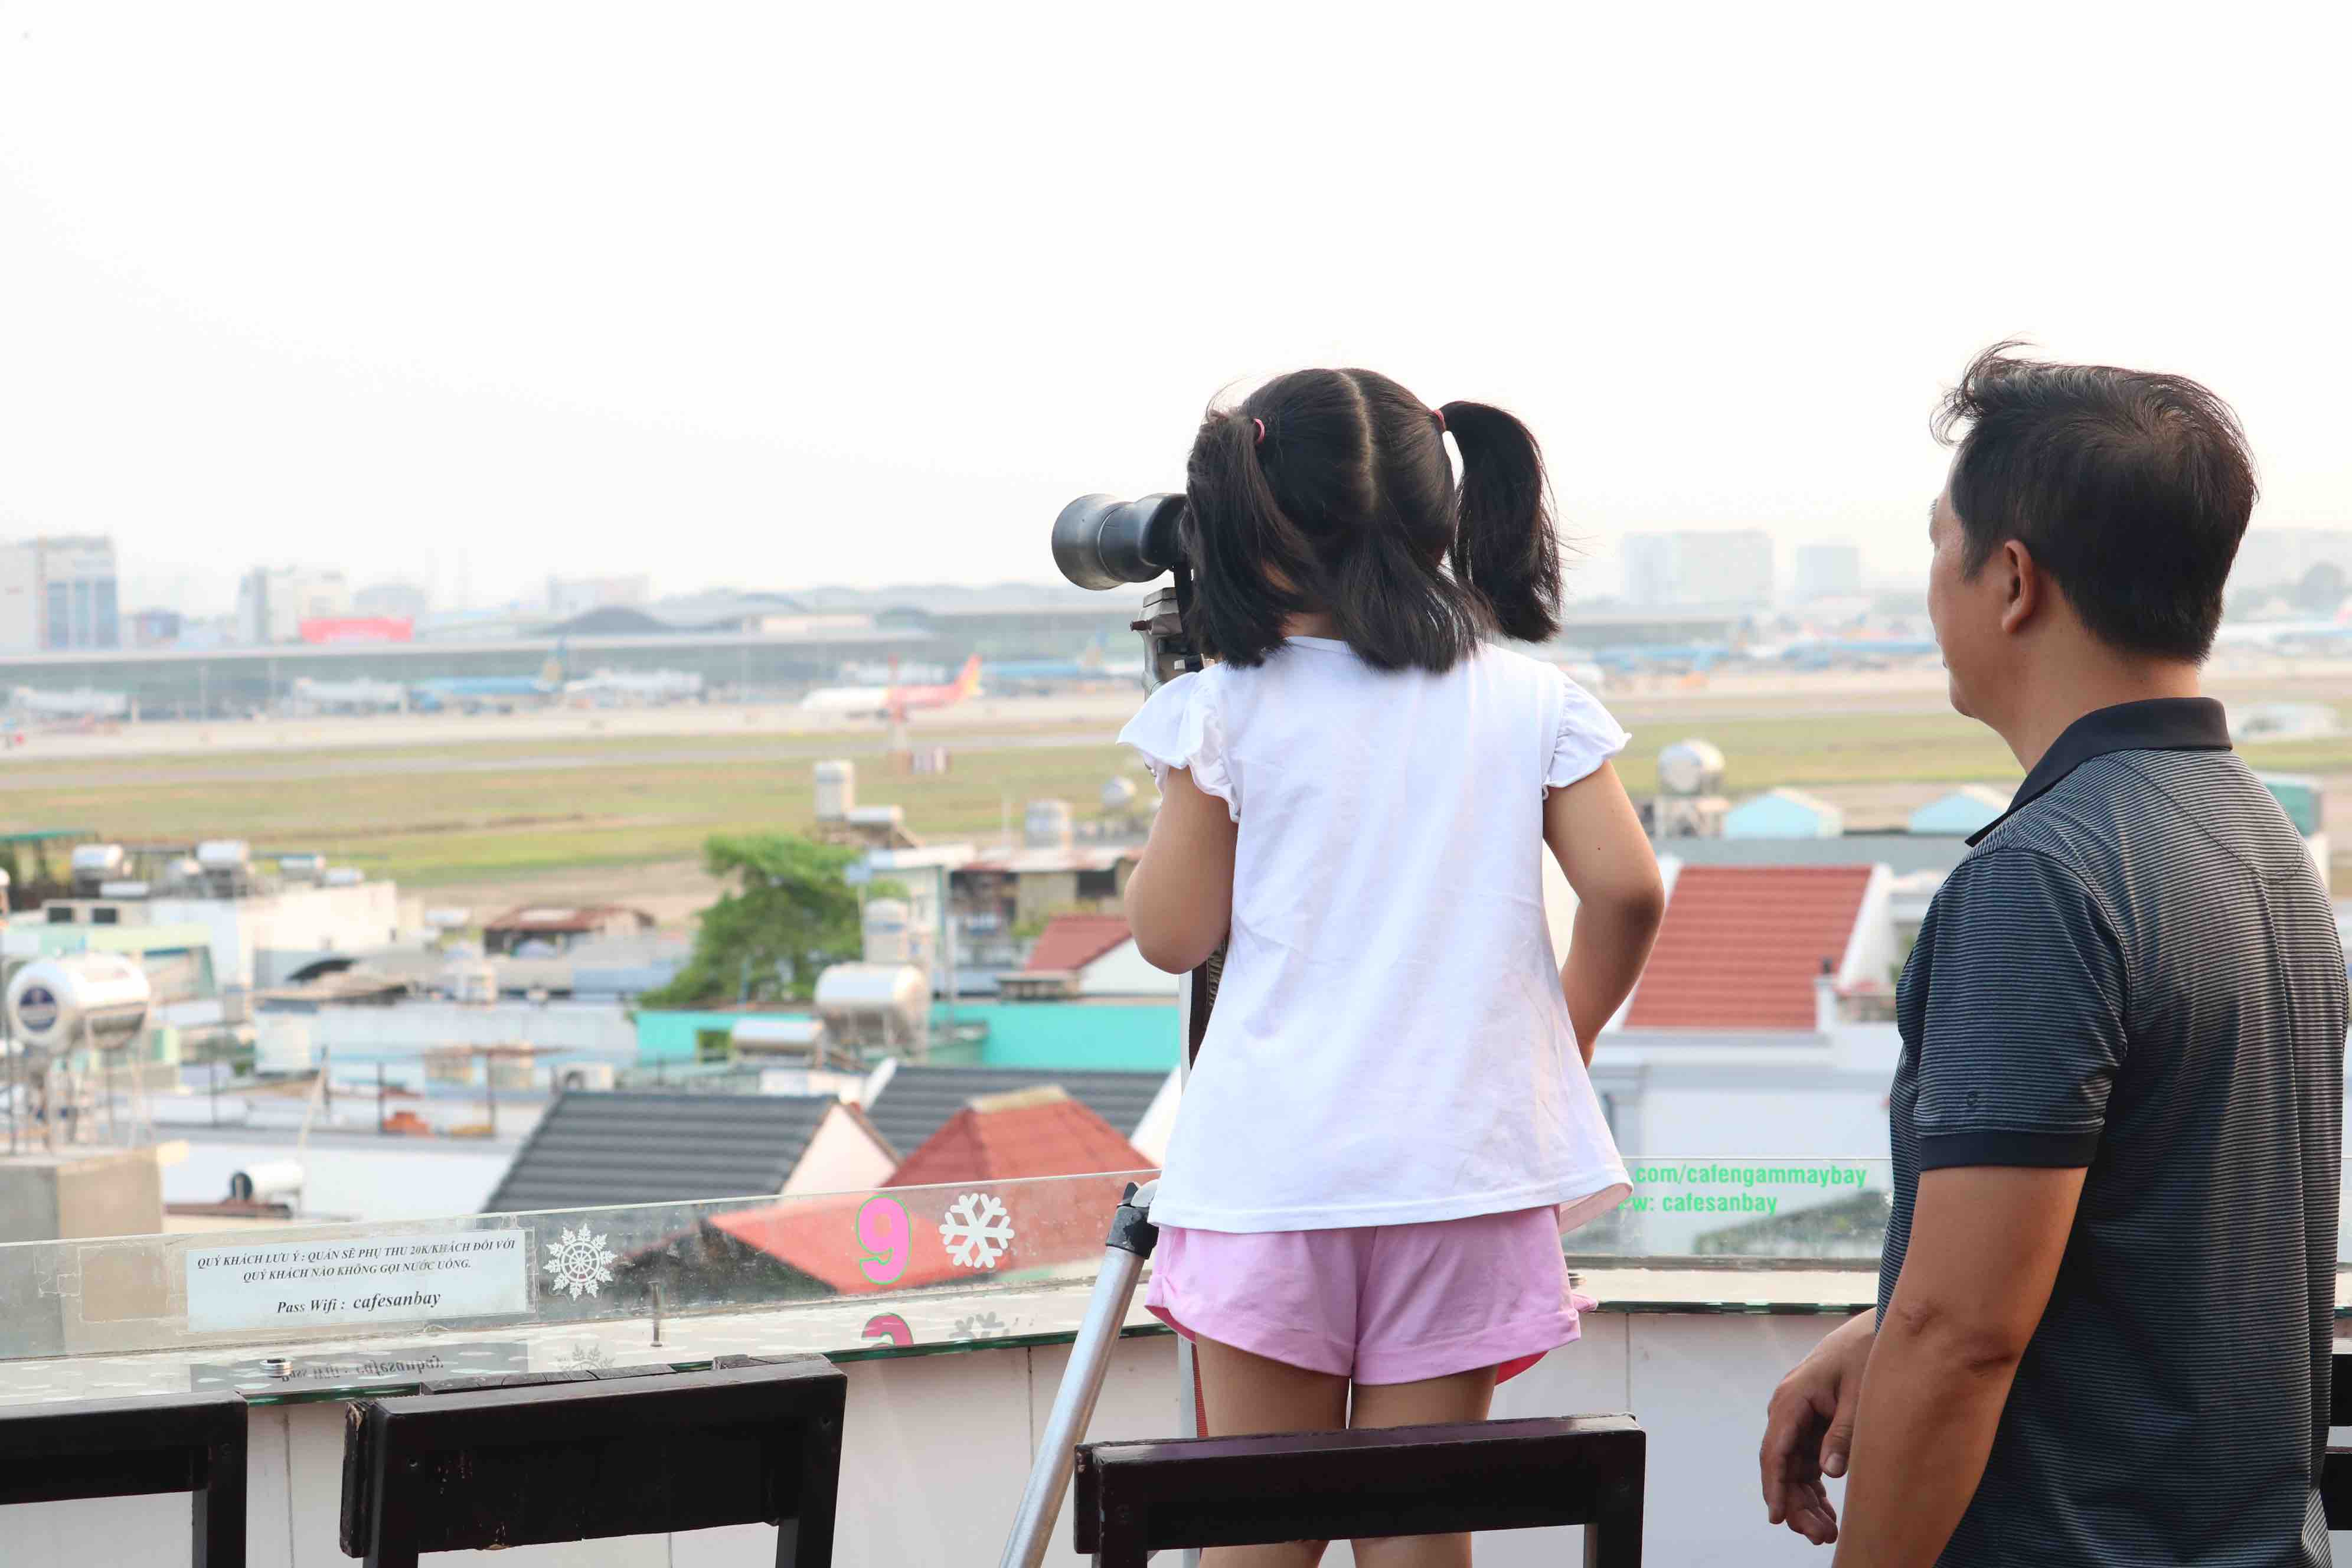 Luu Ngoc Tuan, the owner of Ngam May Bay, teaches his daughter how to use binoculars to watch planes in Go Vap District, Ho Chi Minh City. Photo: Hoang An / Tuoi Tre